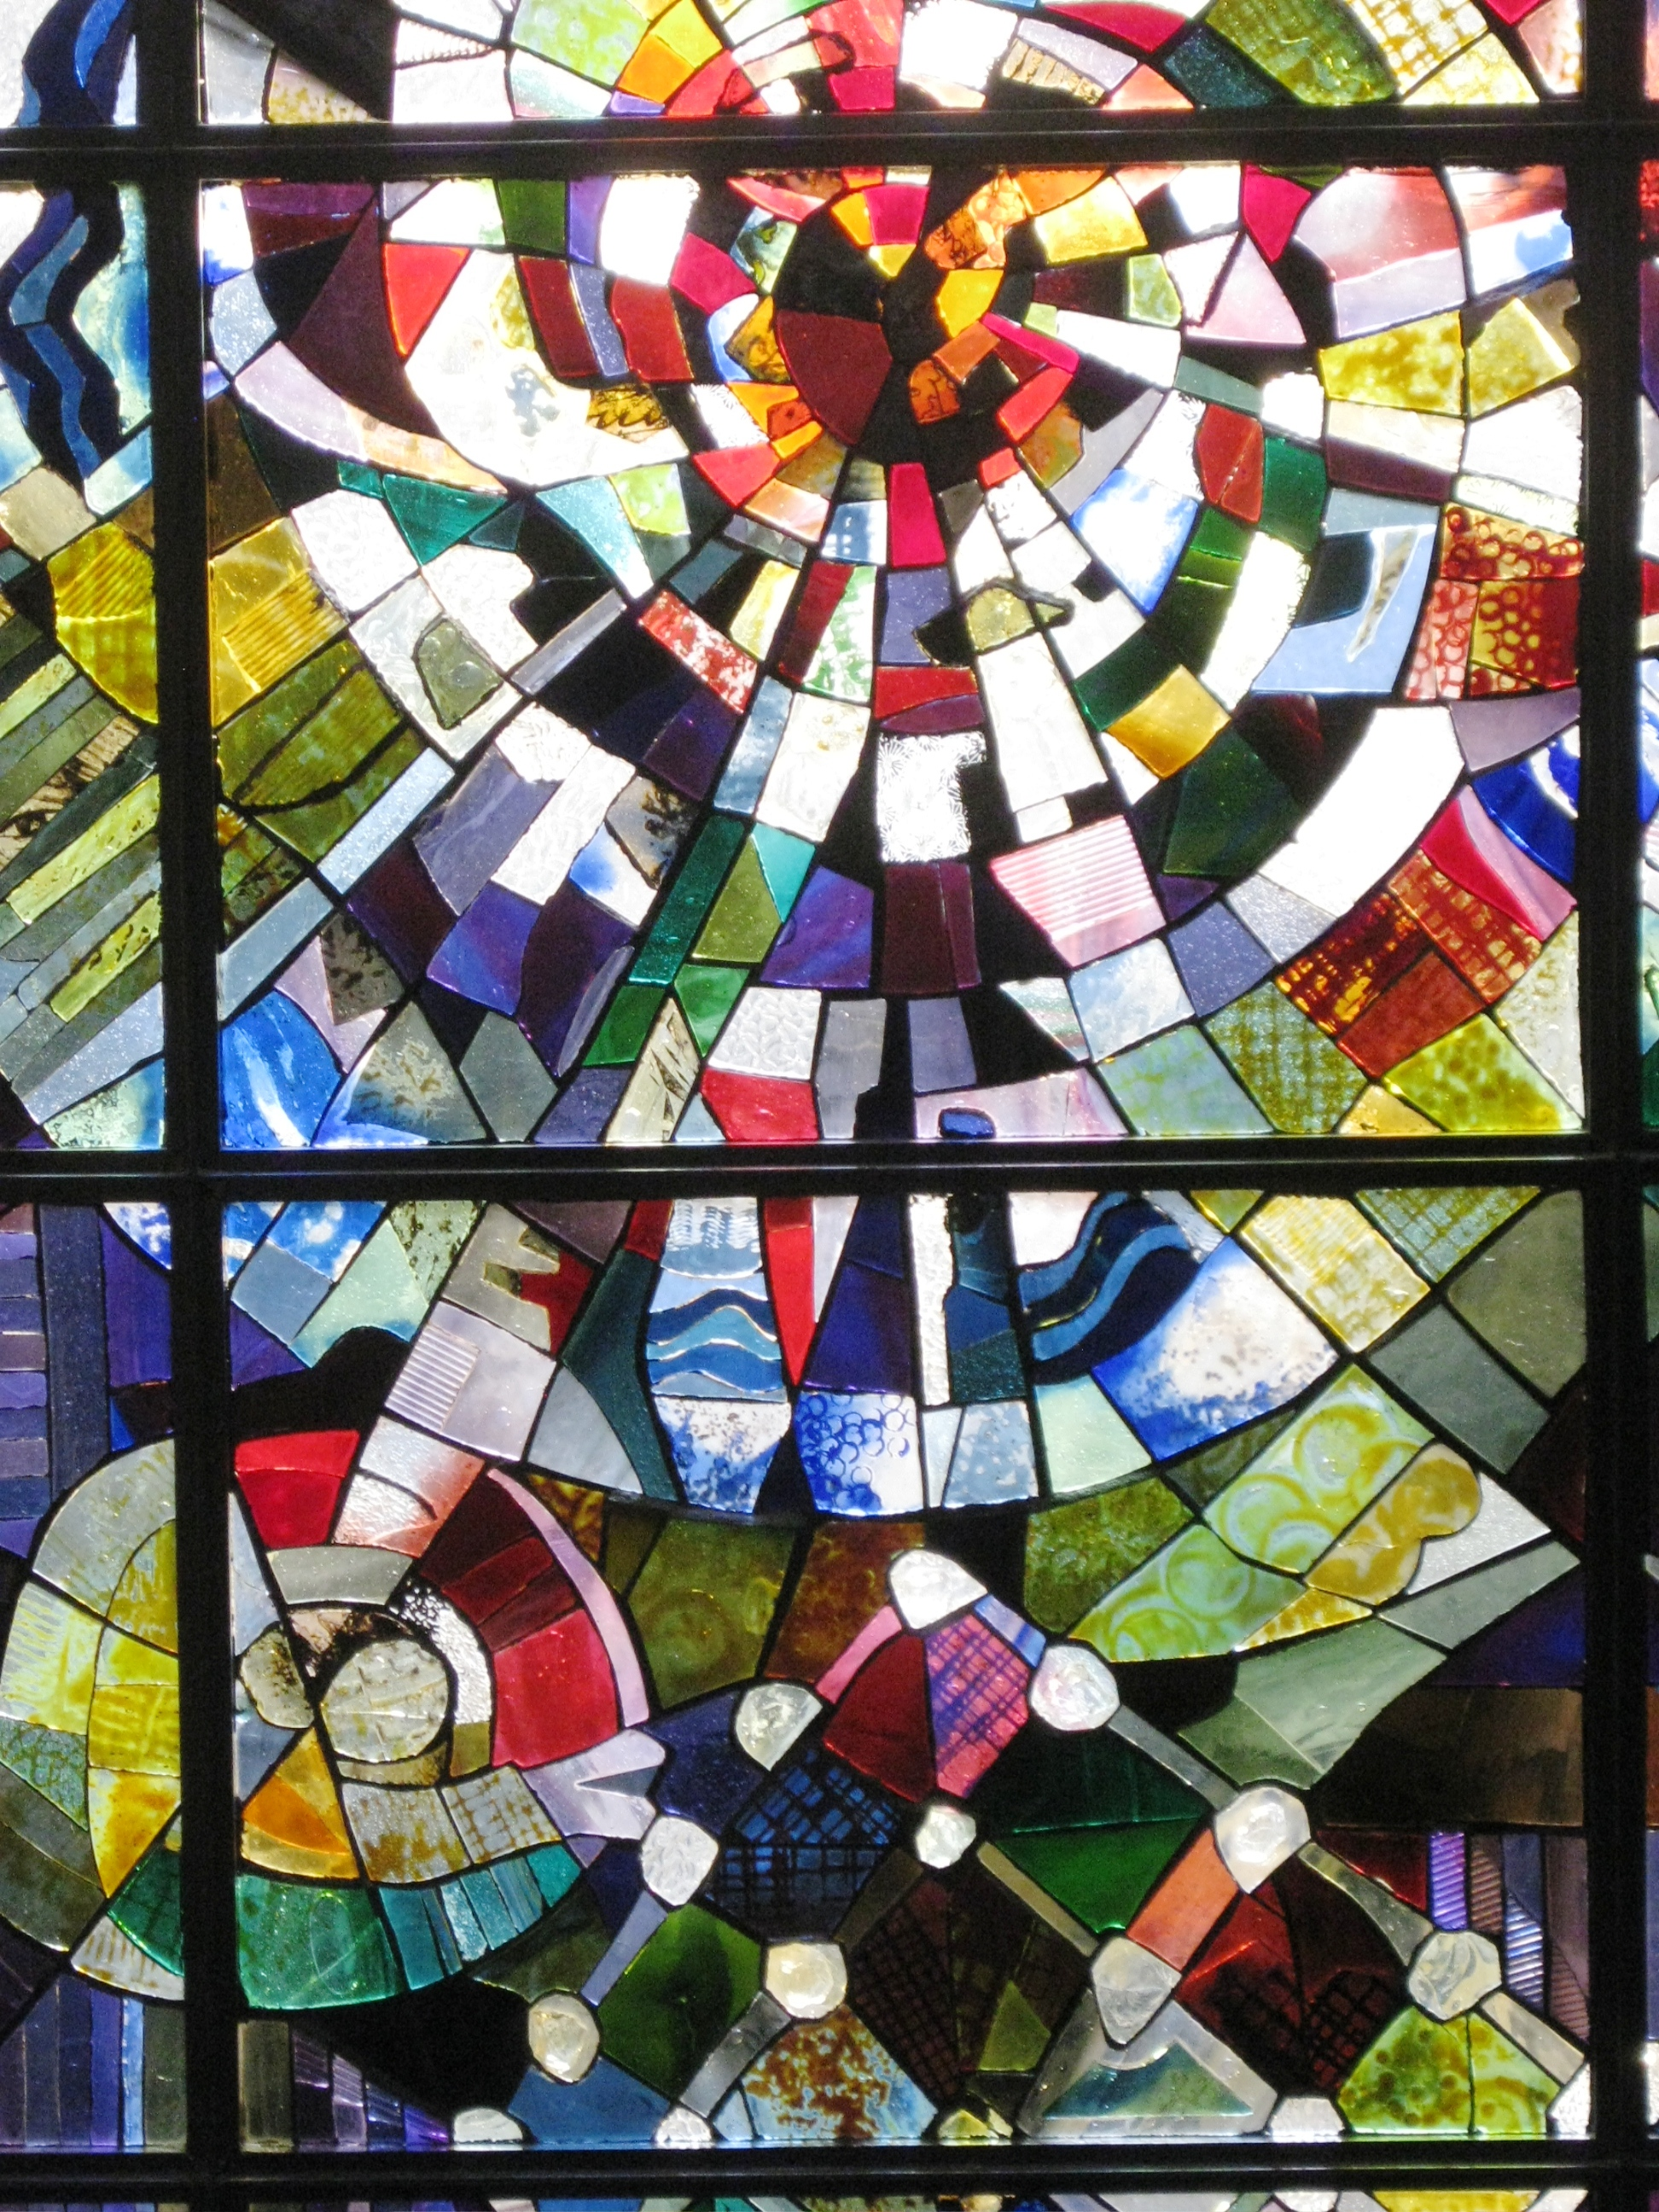 Stained Glass Art at RSC. Photo Caroline Banks